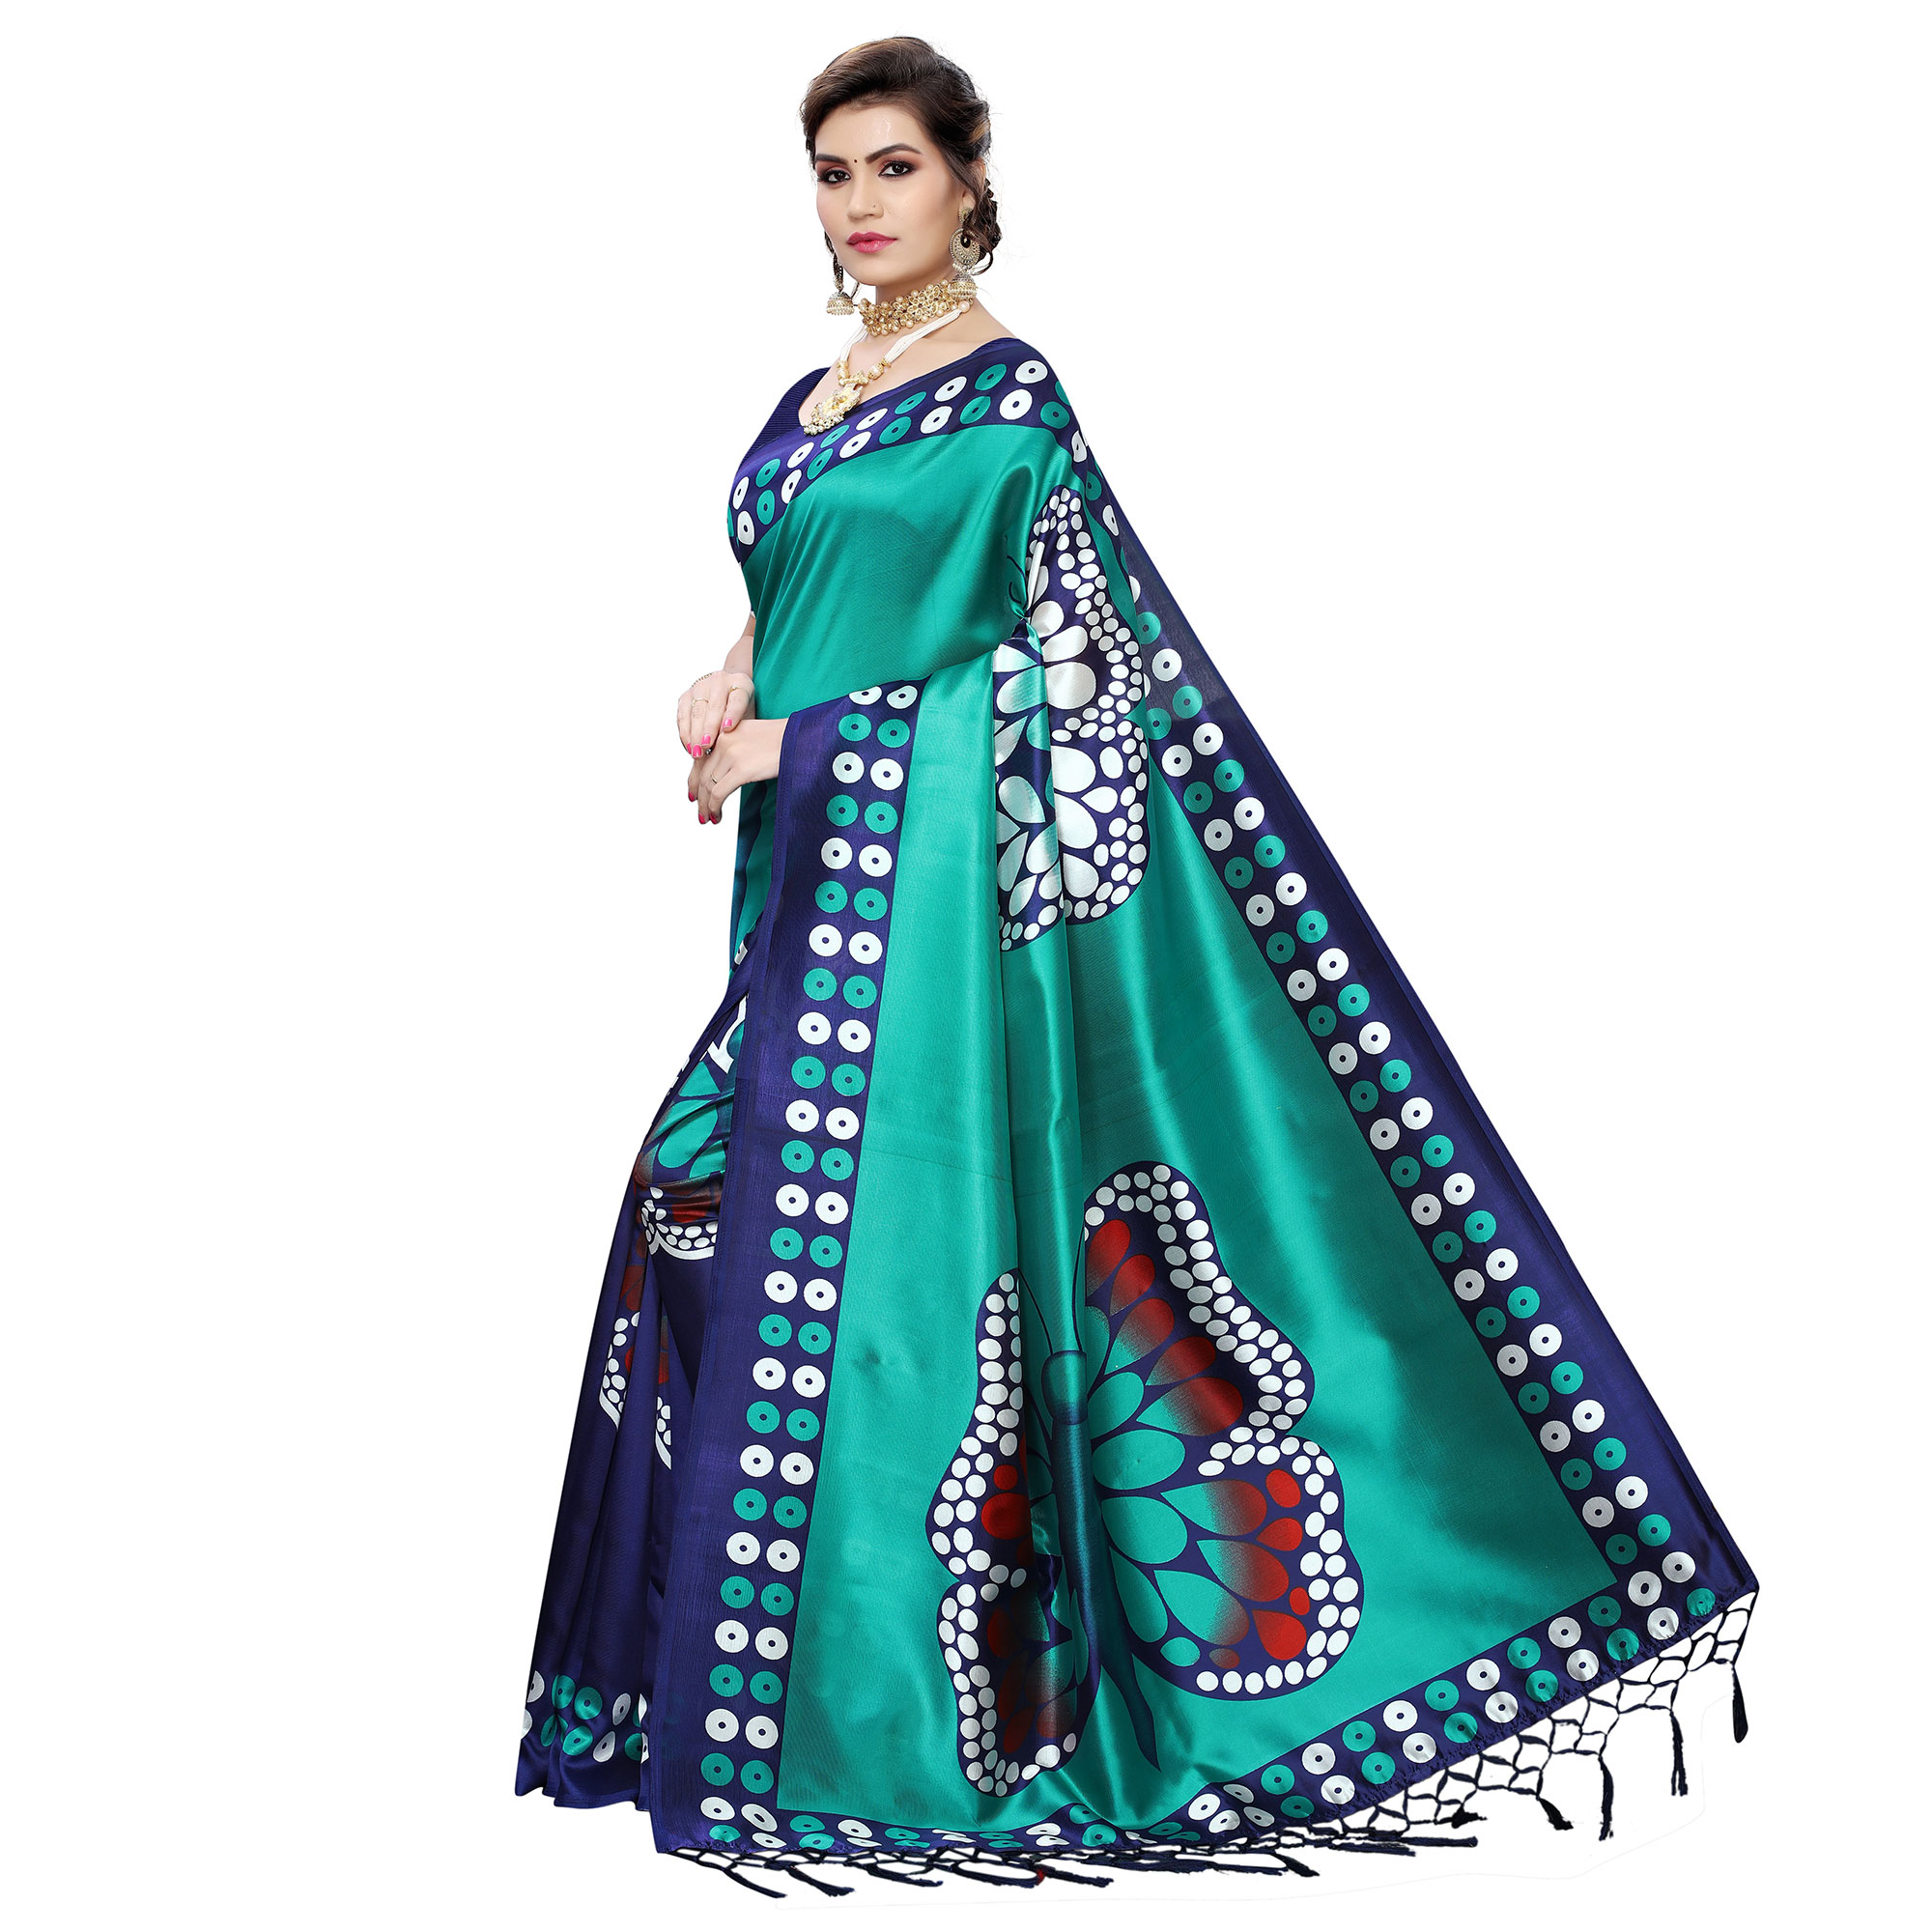 Trendy Navy Blue-Turquoise Colored Festive Wear Butterfly Printed Art Silk Saree With Tassels